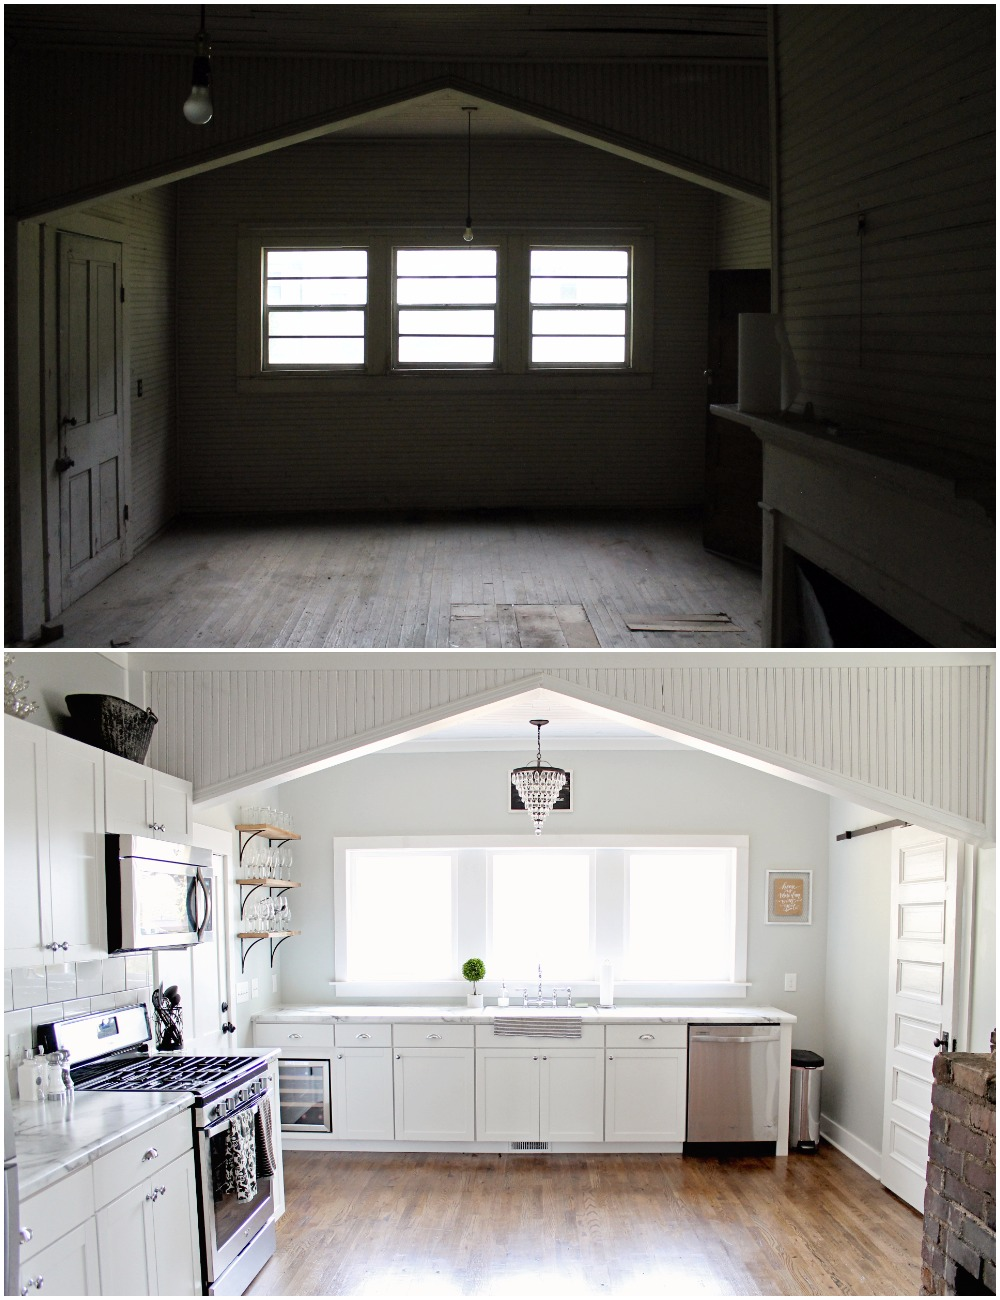 Exceptionnel Elizabeth Burns Design | Old Farmhouse Fixer Upper Kitchen Renovation    White Shaker Cabinets And Marble